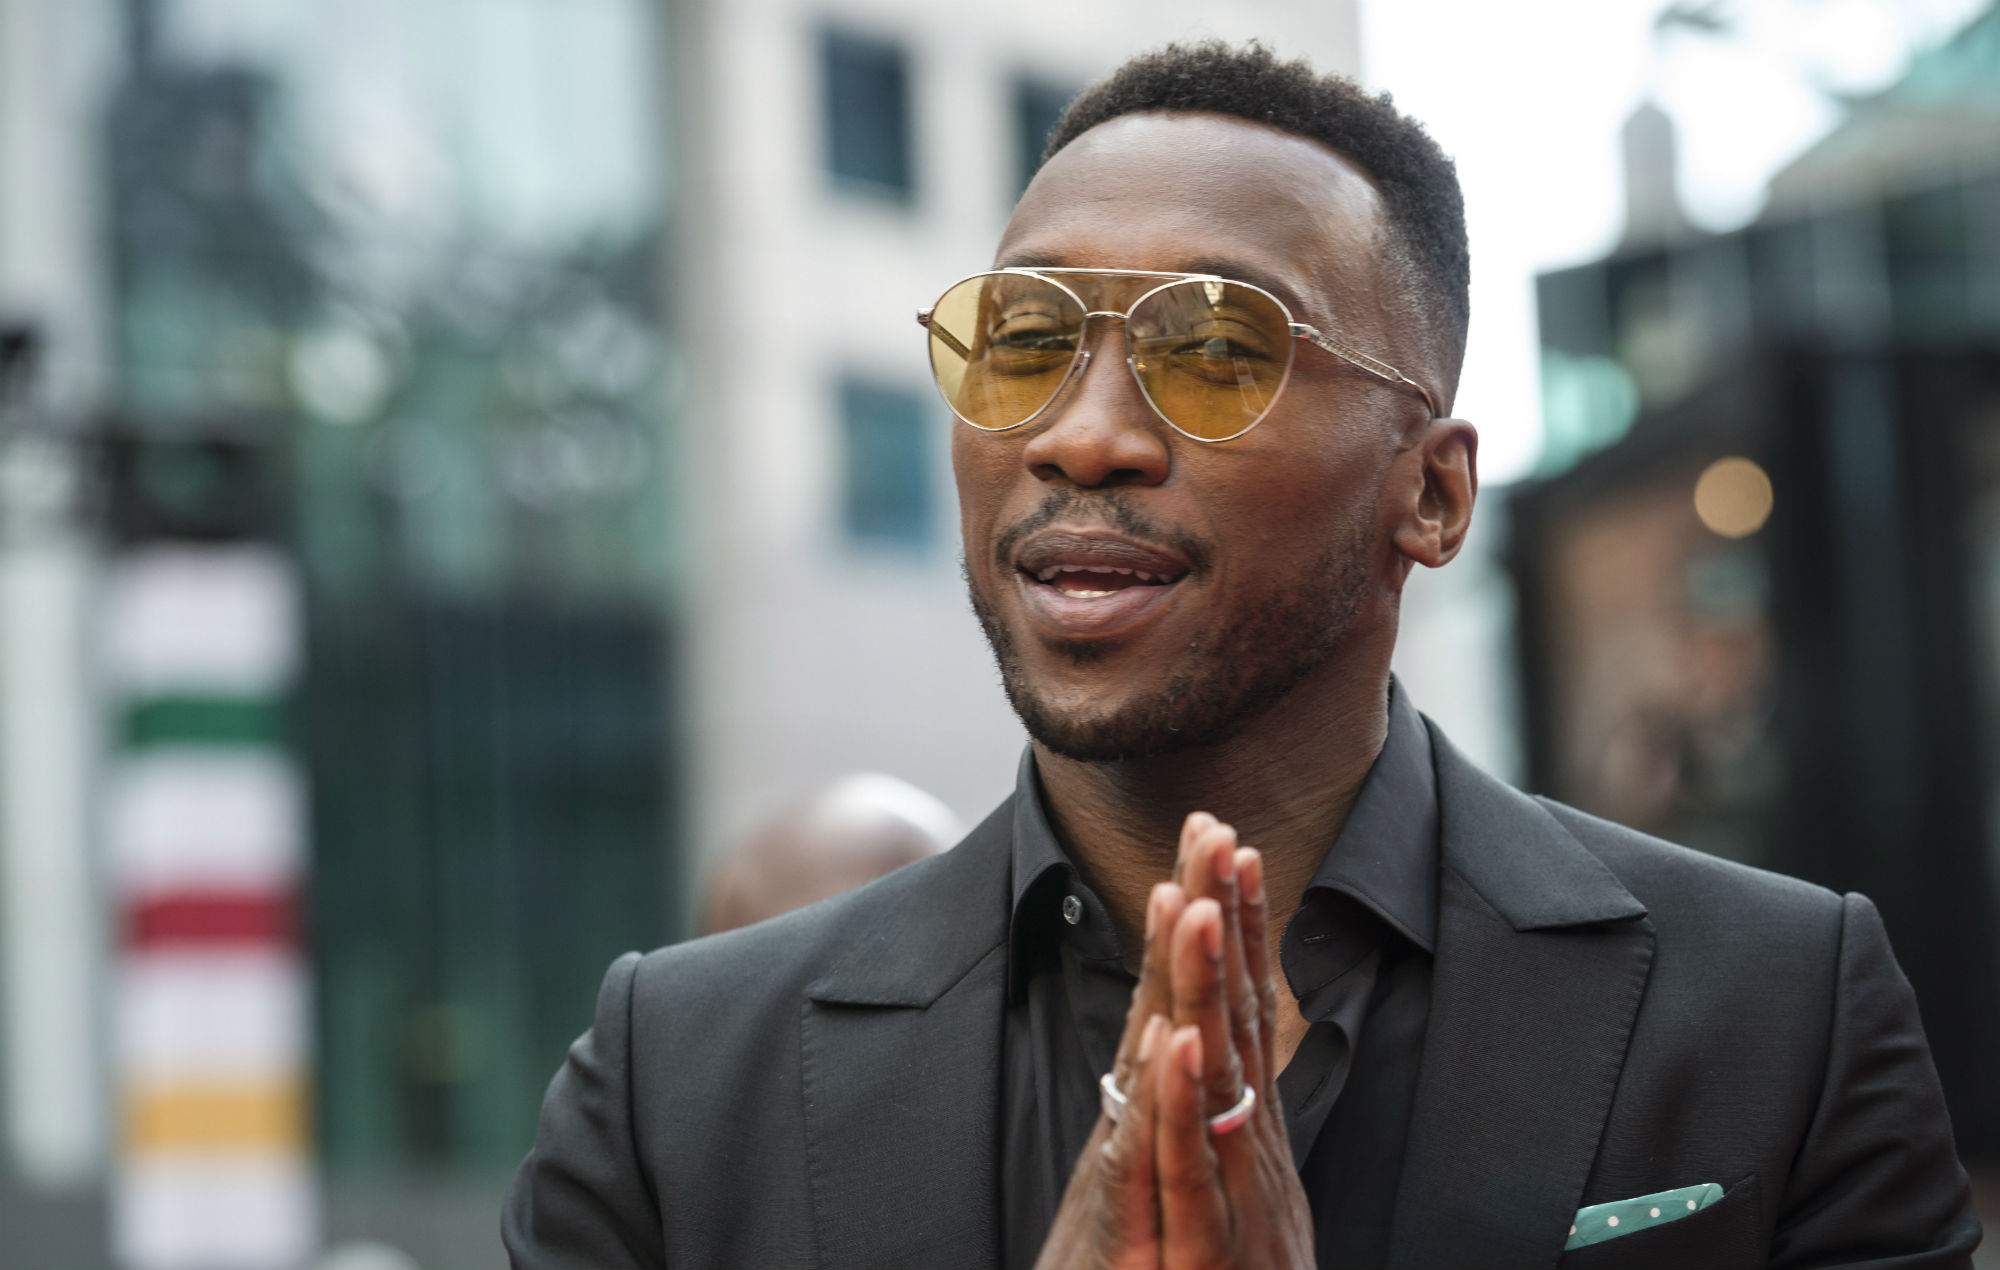 NME Festival blog: Watch Mahershala Ali take centre stage in tense 'True Detective' trailer